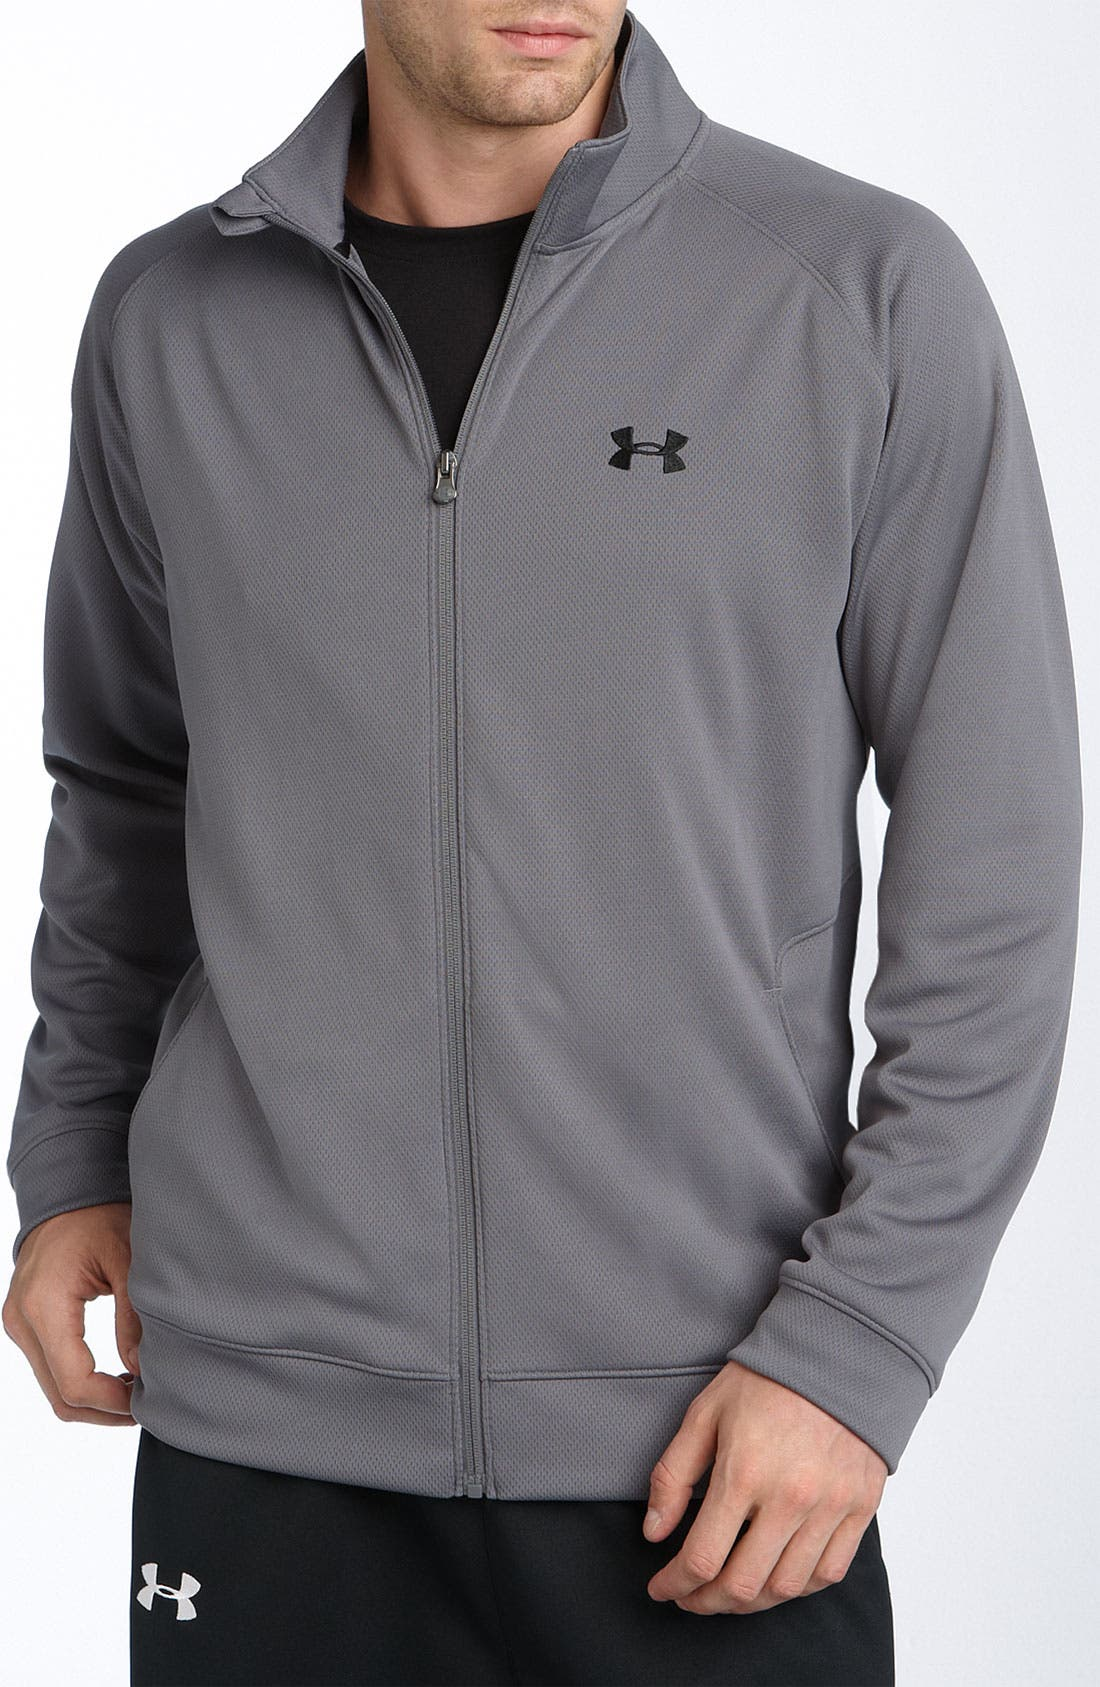 Alternate Image 1 Selected - Under Armour 'Flex' ColdGear® Jacket